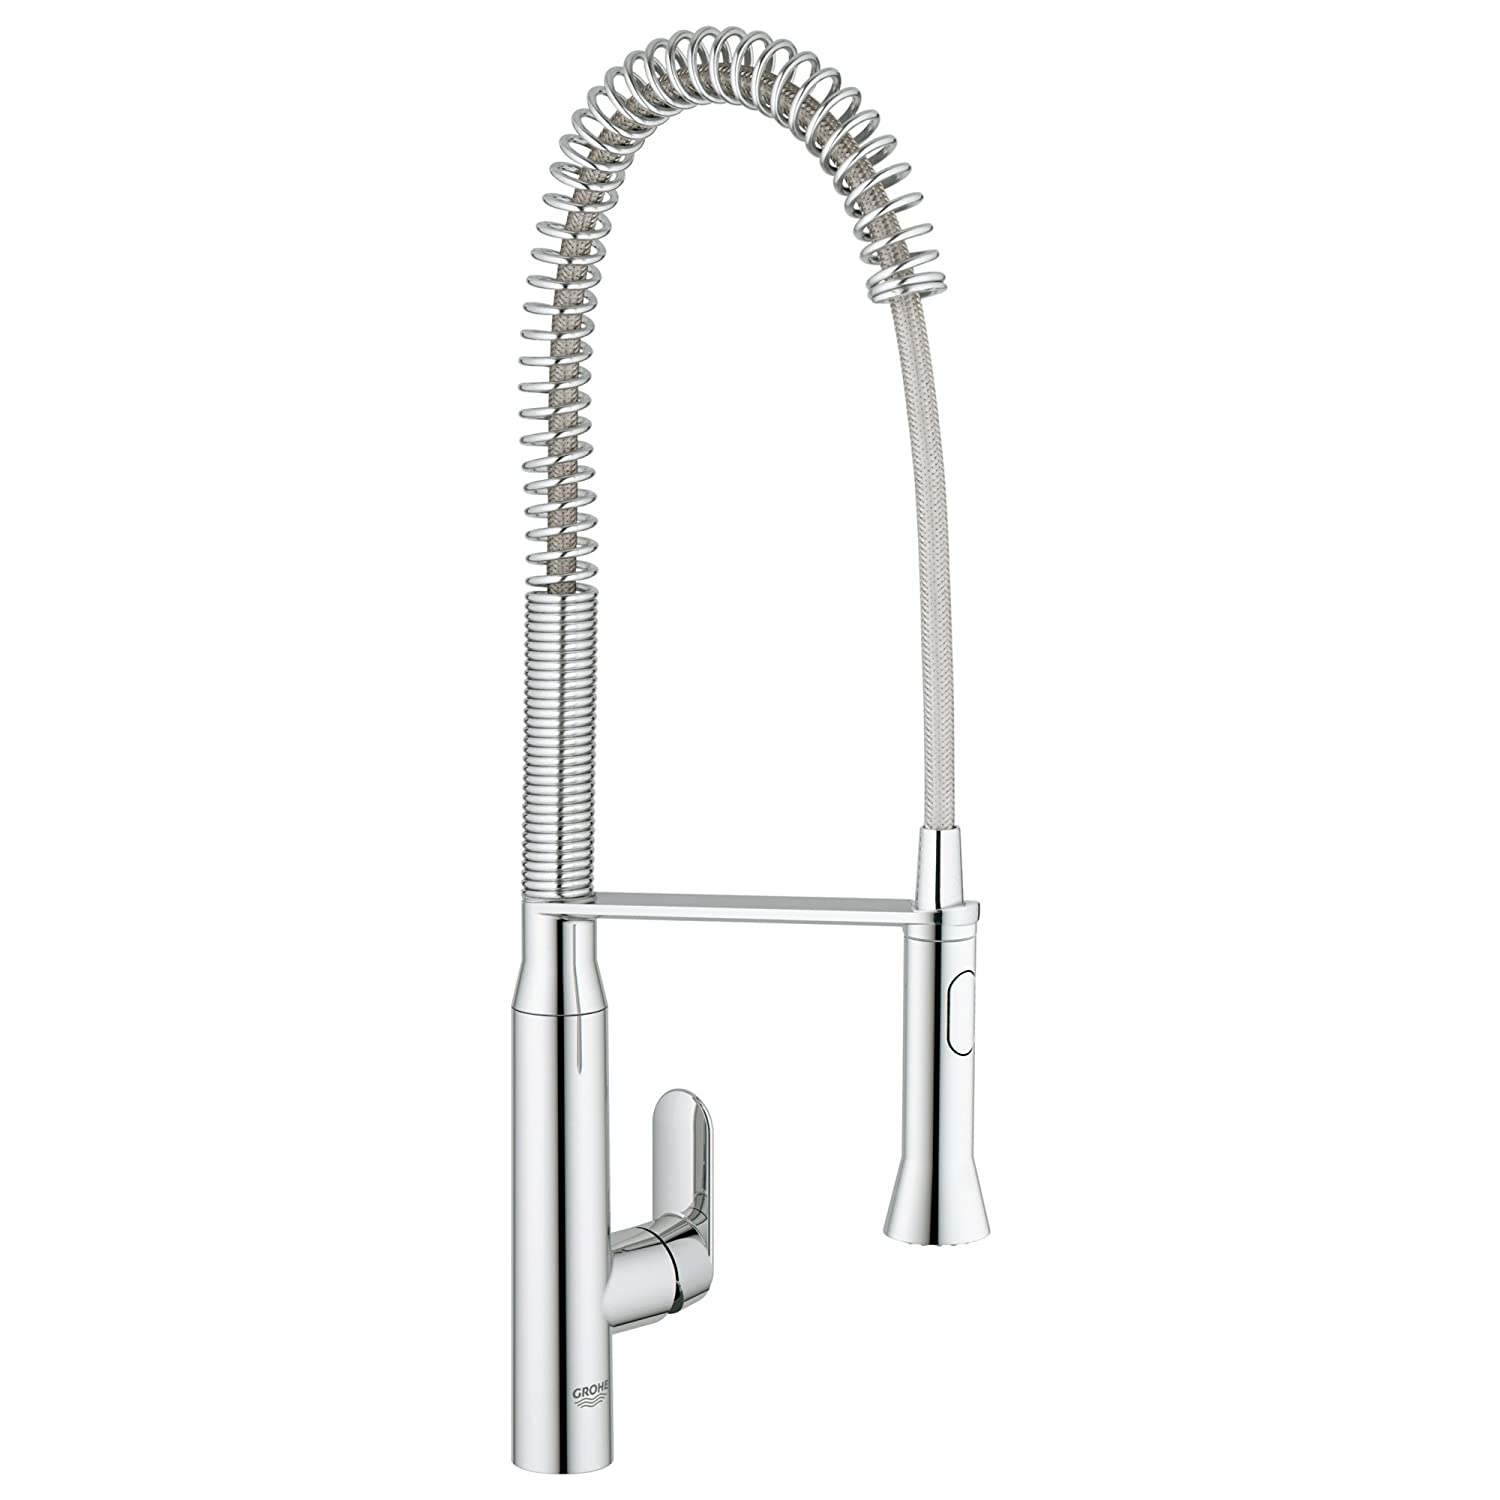 Grohe 32951000 K7 Semi Pro Single Handle Pull Out Kitchen Faucet, Starlight  Chrome   Touch On Kitchen Sink Faucets   Amazon.com